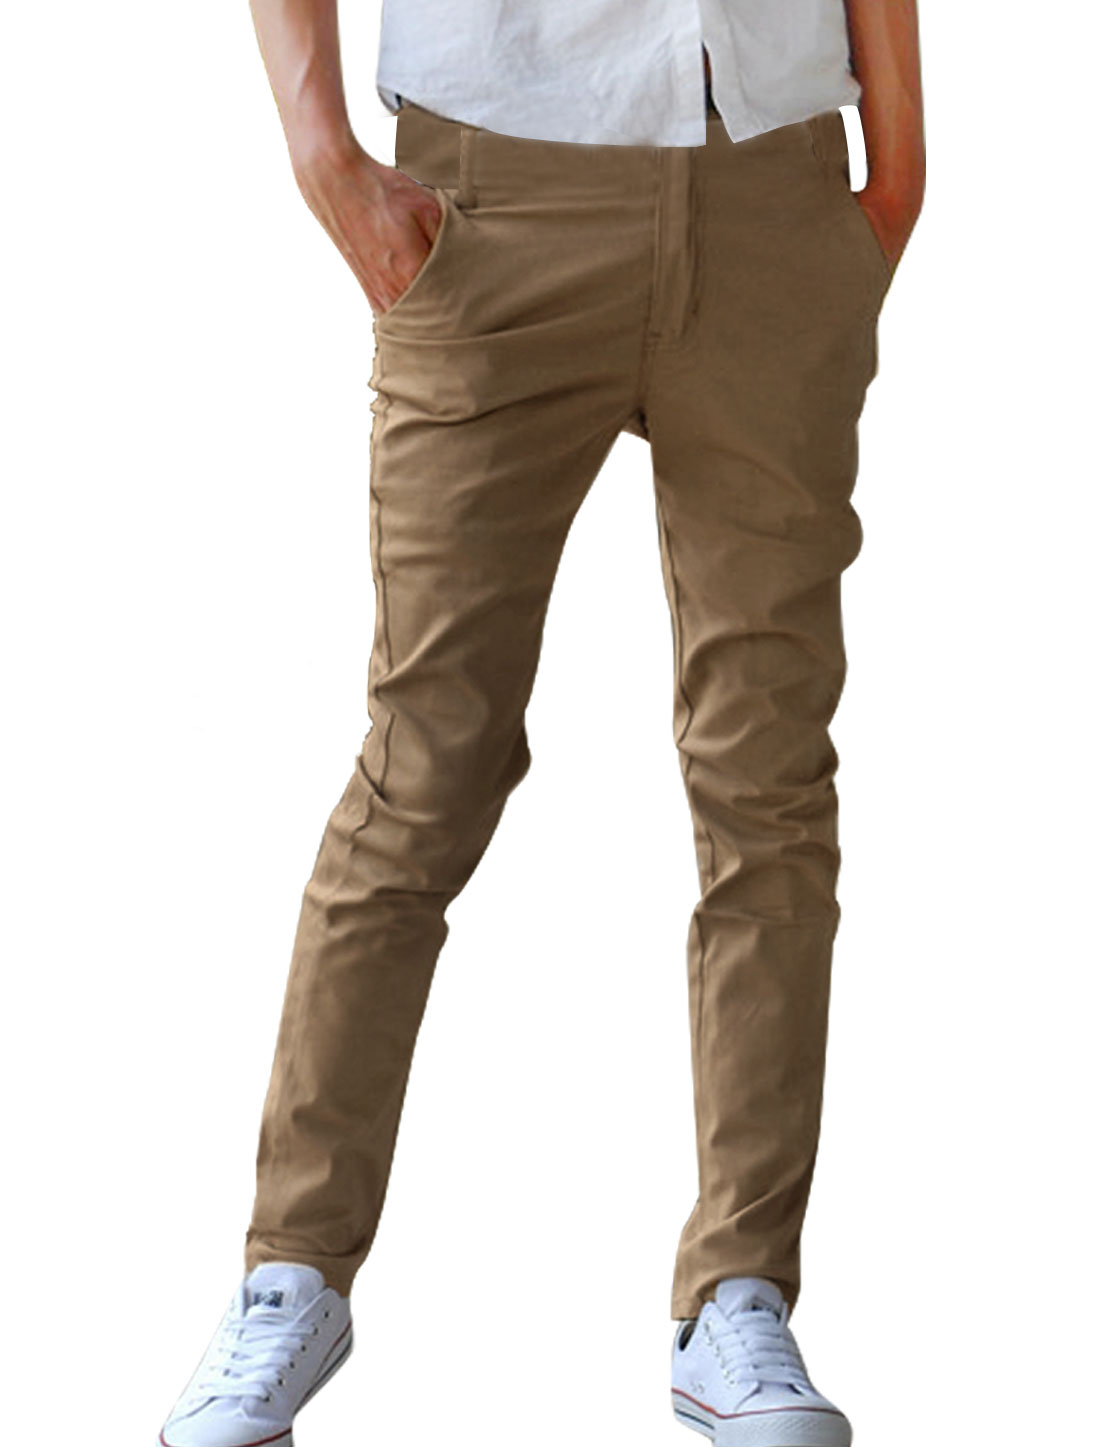 Mens Slim Fit Medium Khaki Casual Button up NEW Trendy Straight Trousers W30